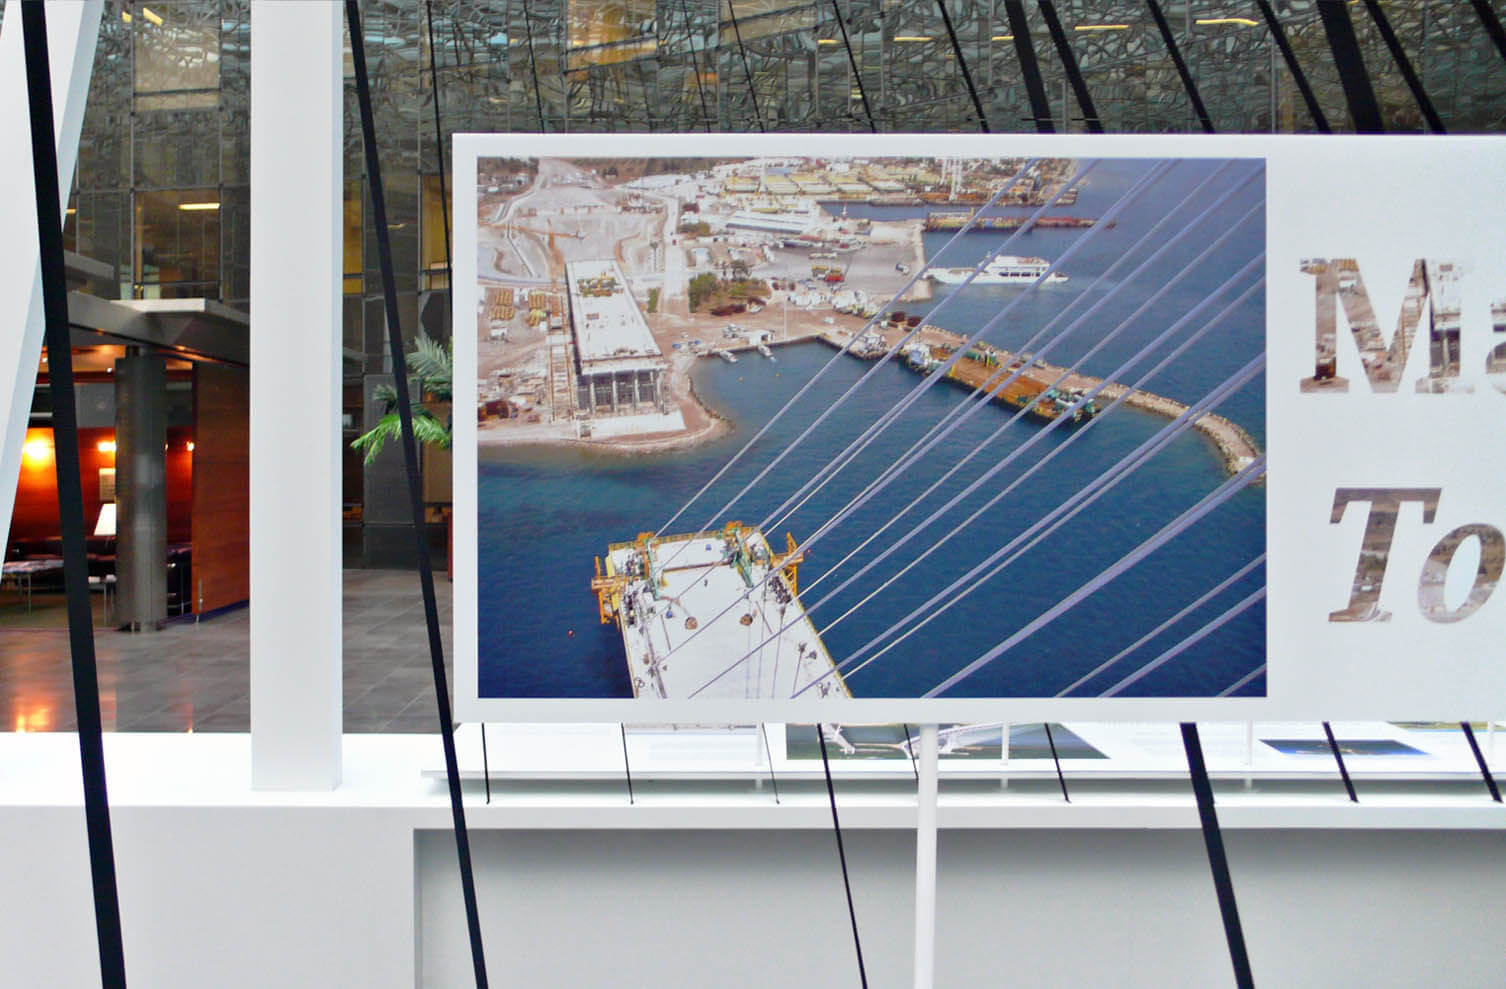 Image Expositions groupe Vinci 10